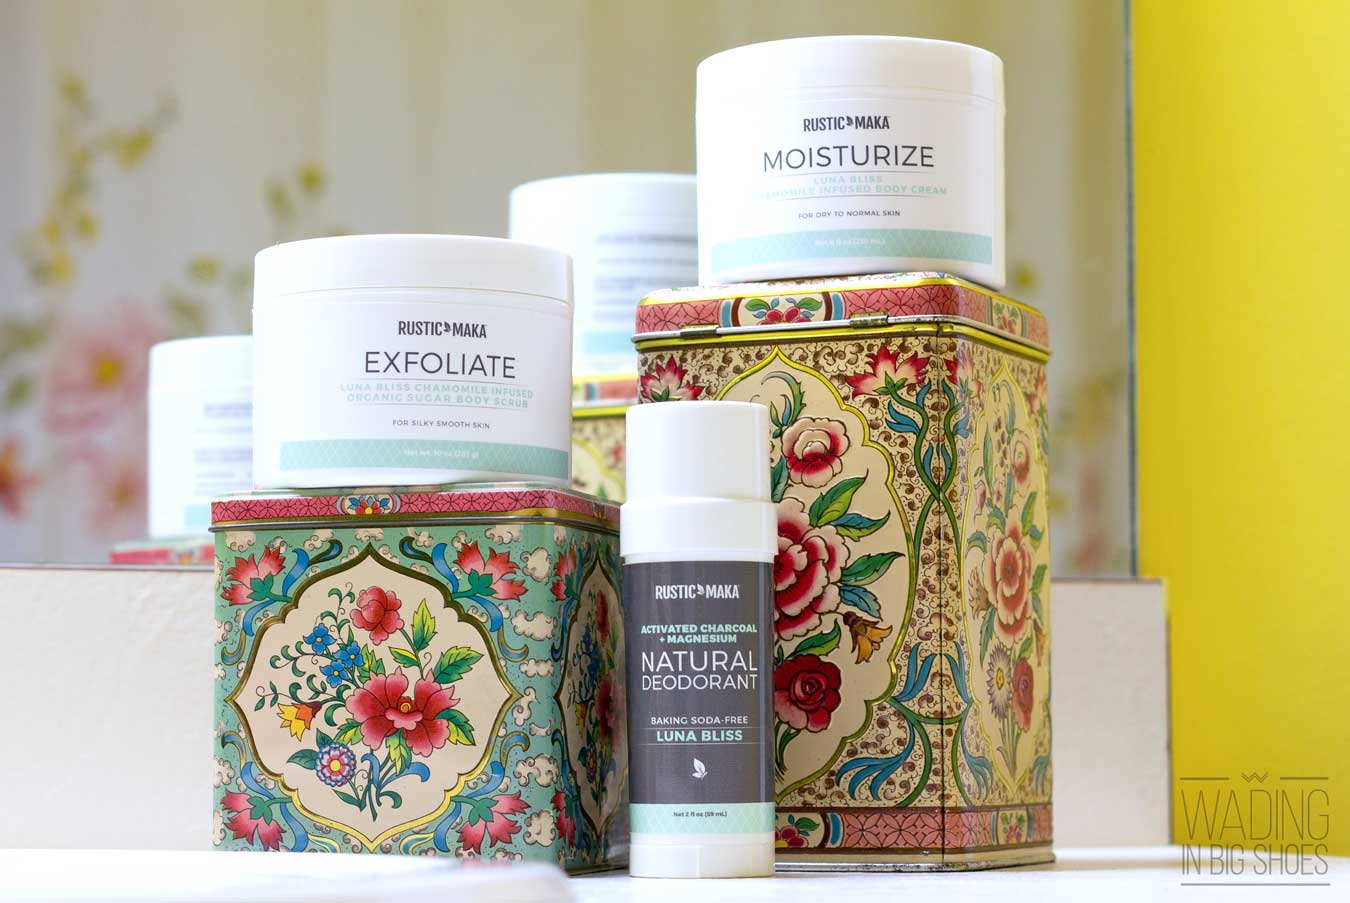 This Michigan Skin Care Line Makes Winter Skin Feel (And Smell) Like Springtime | via Wading in Big Shoes